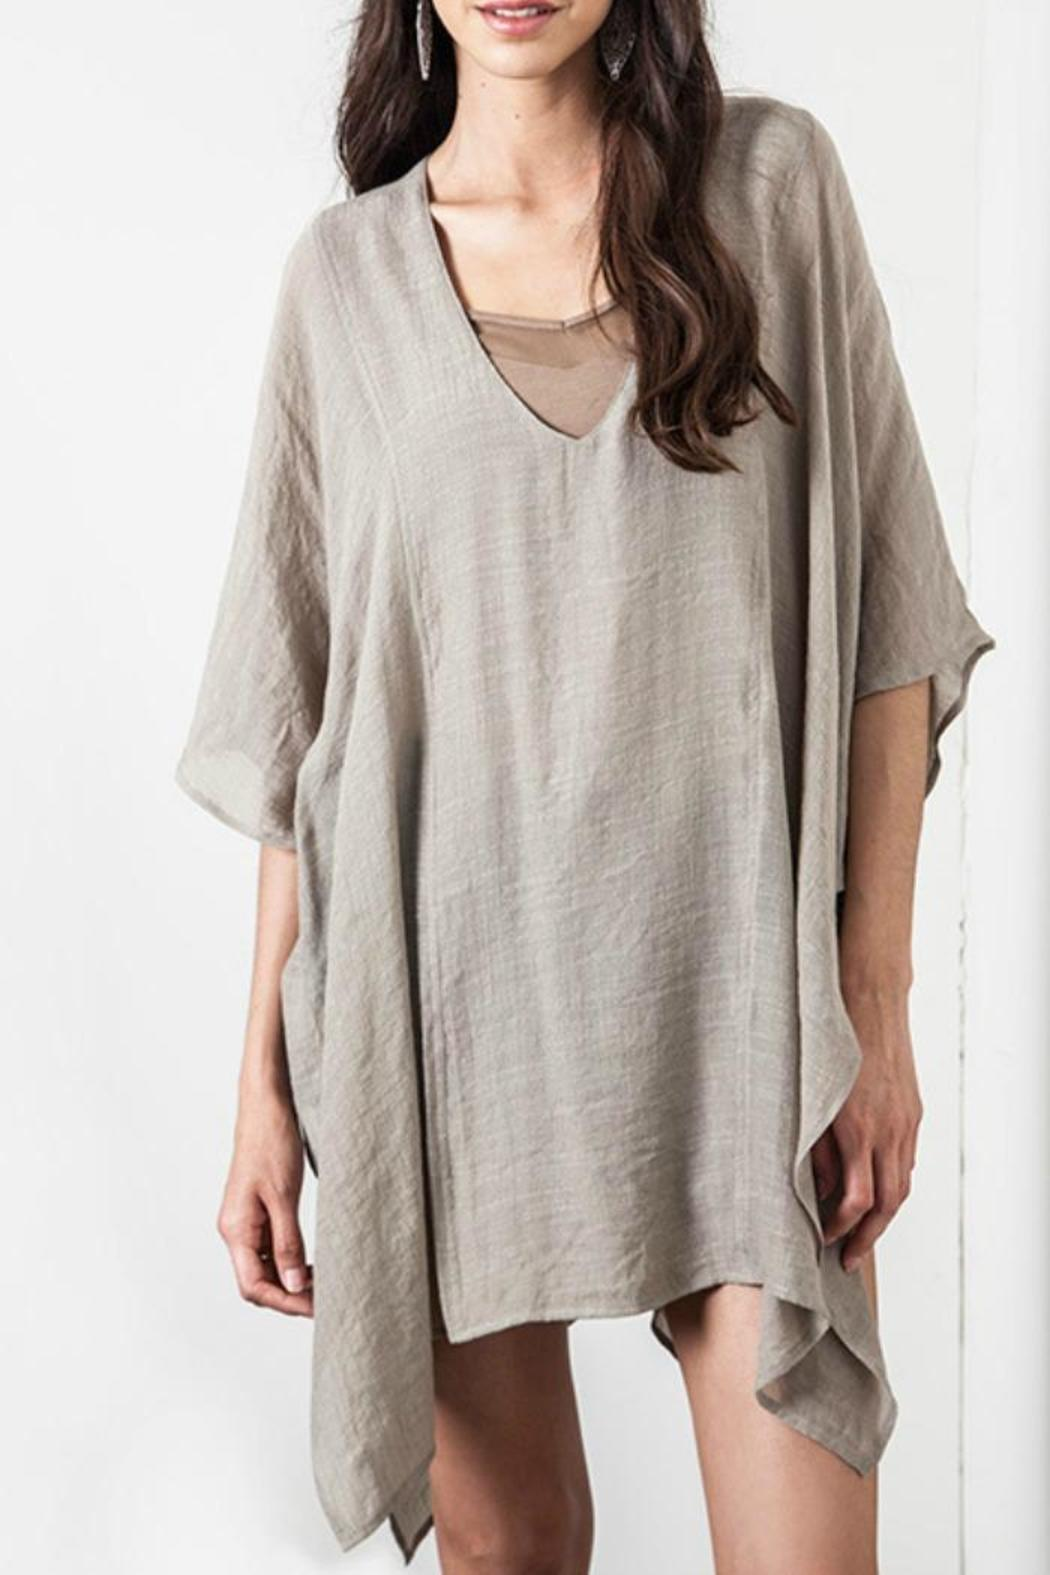 Umgee USA V-Neck Caftan - Main Image